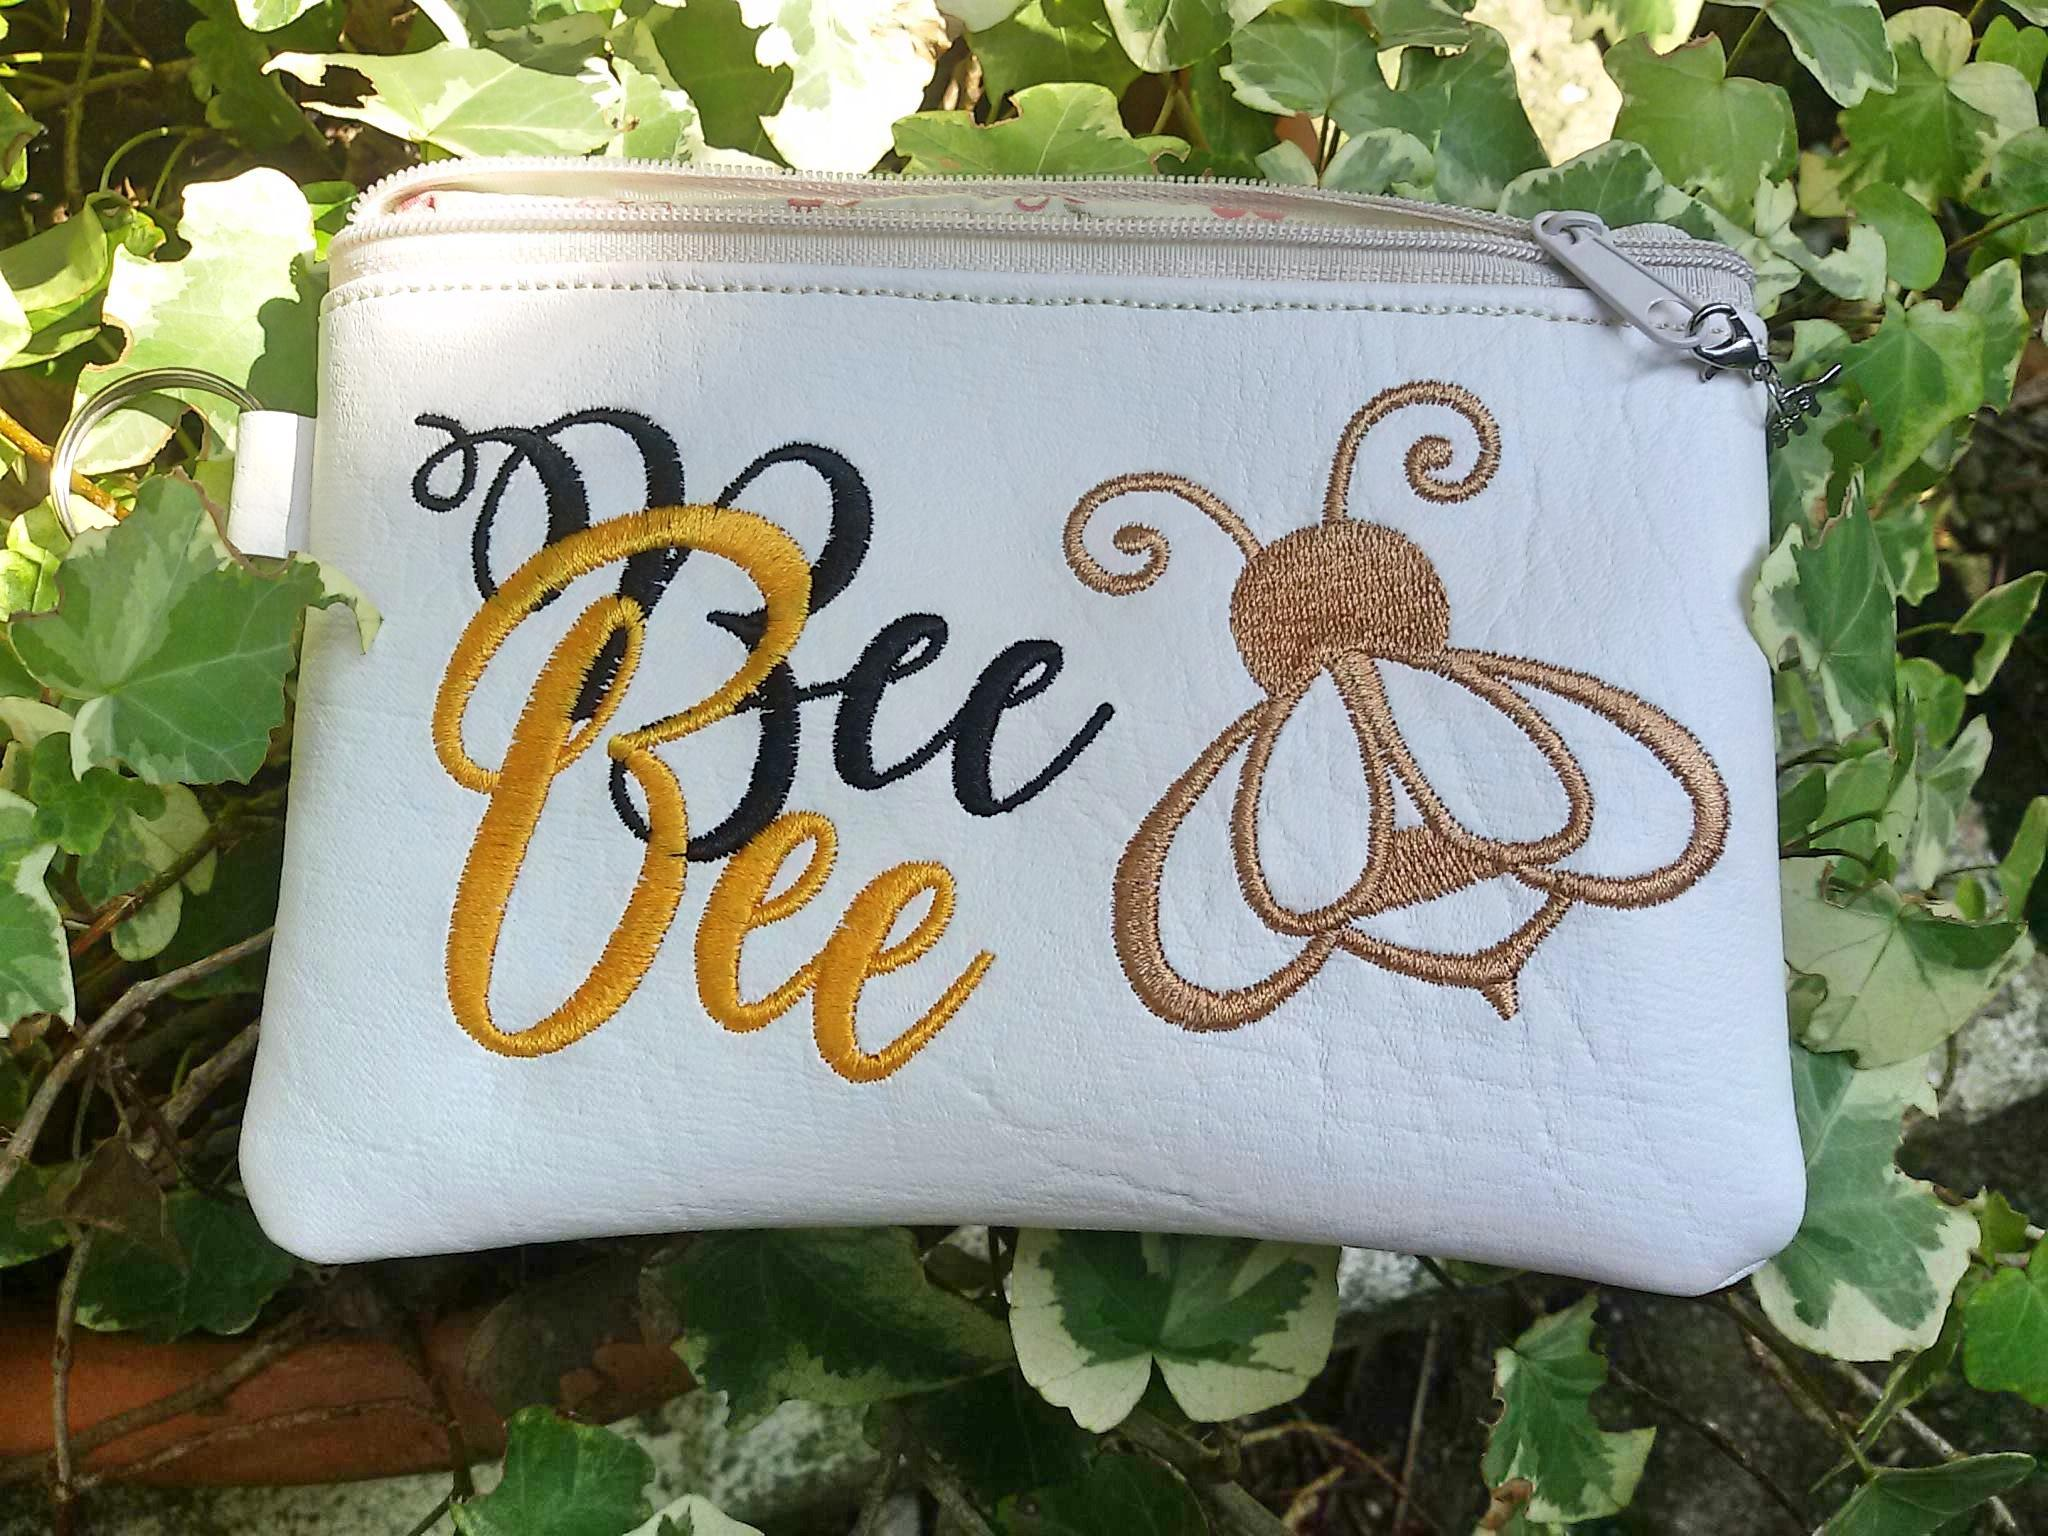 Embroidered handbag with Bee bee design